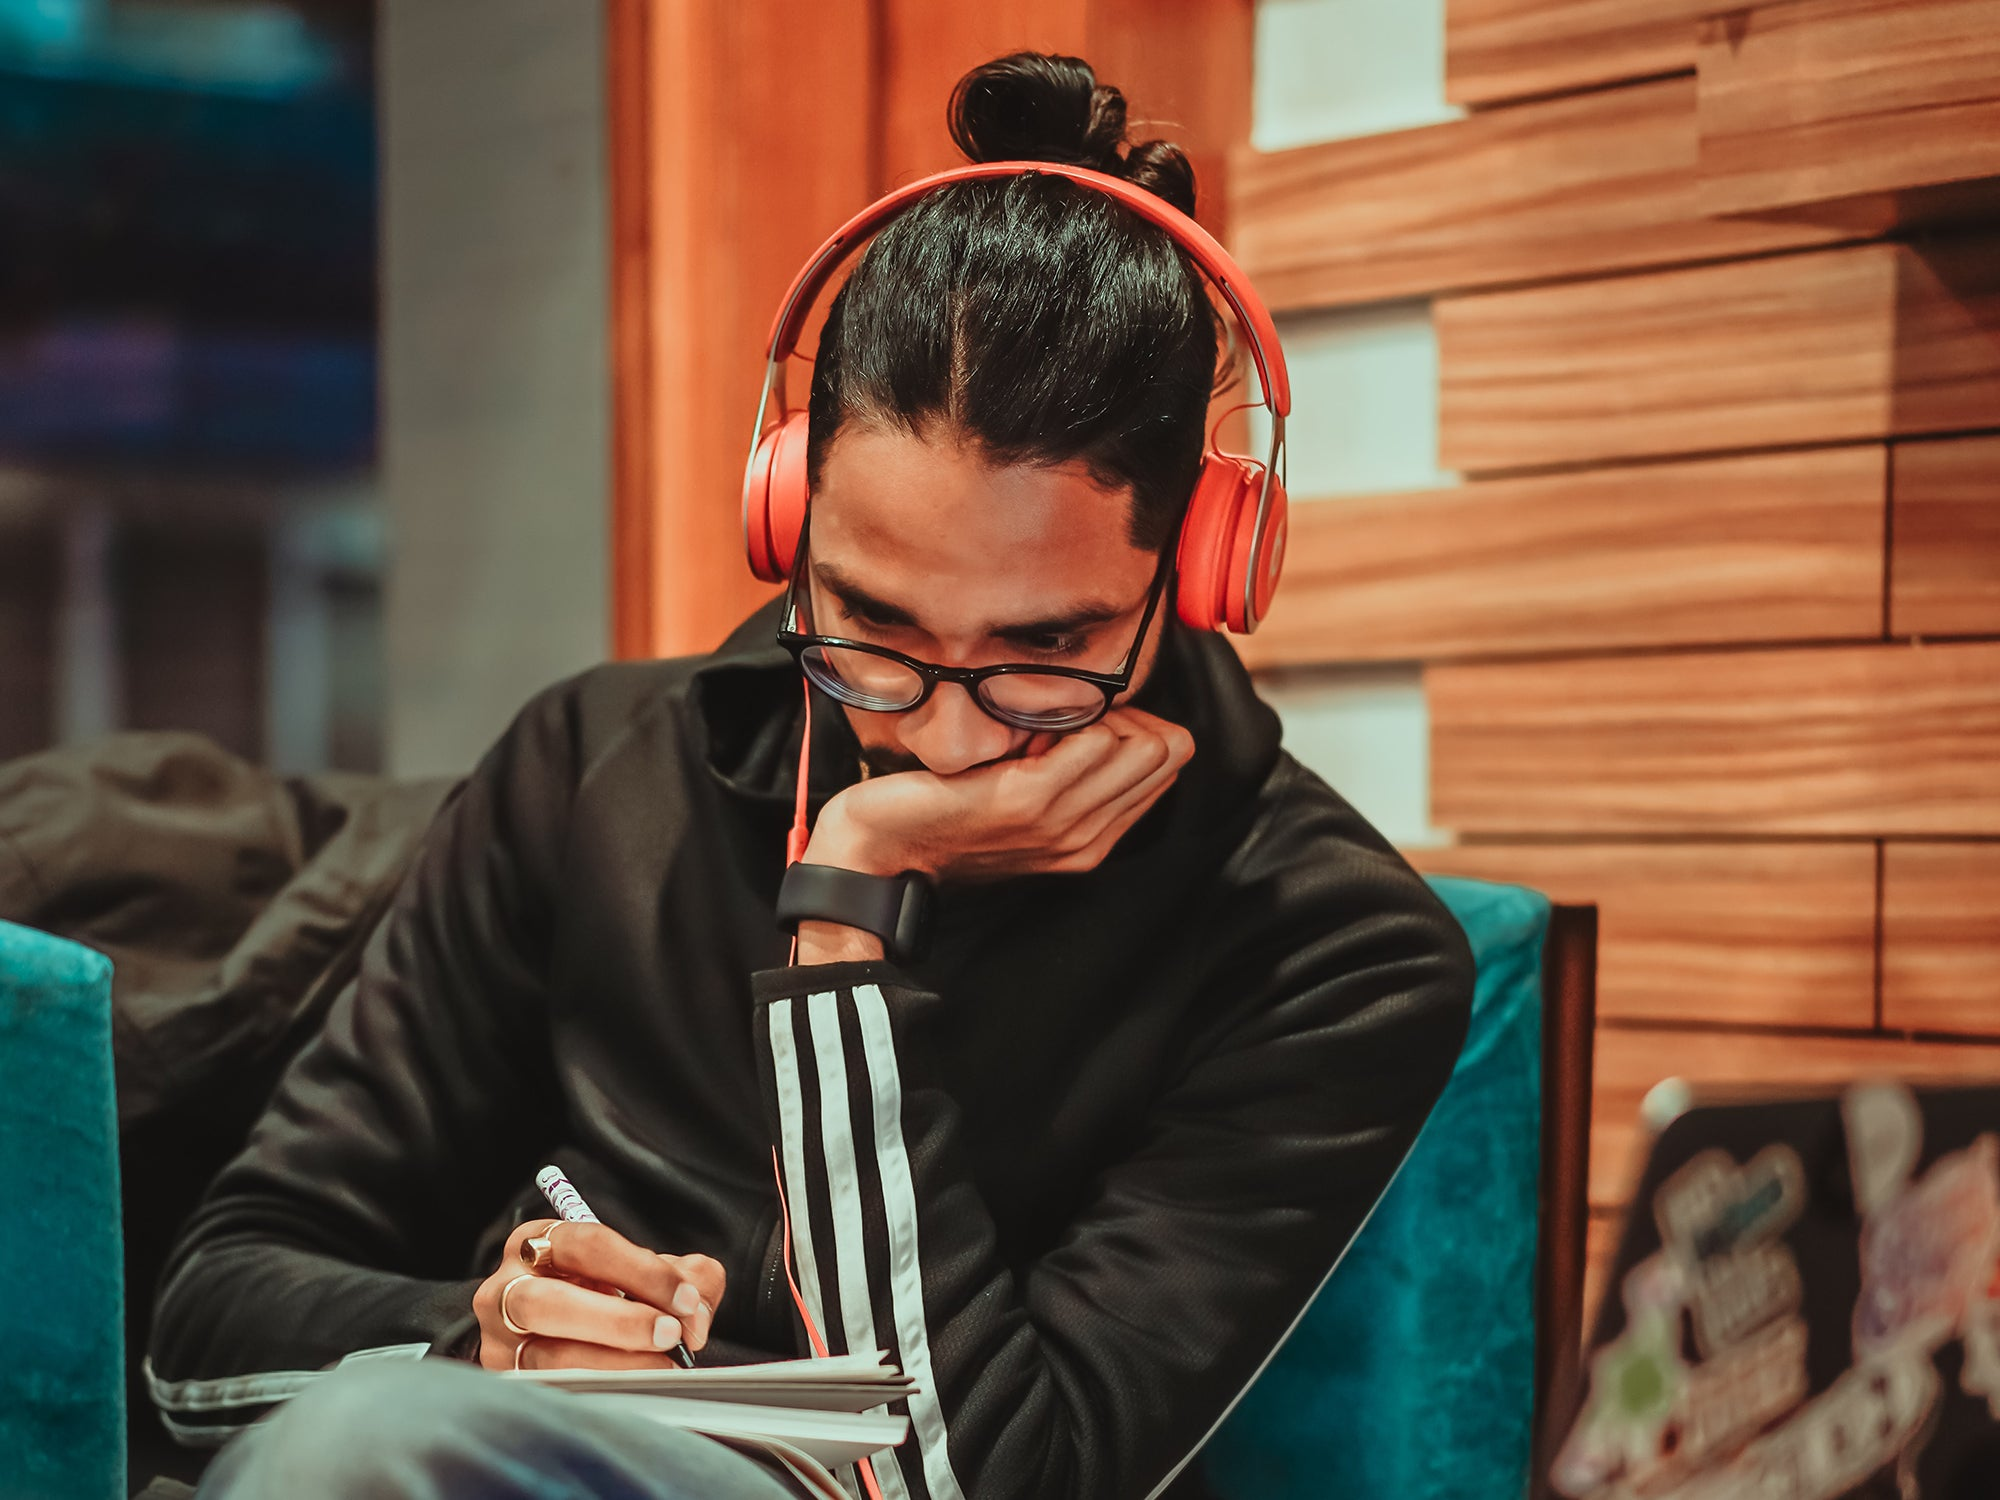 a man with headphones listening to podcasts or music